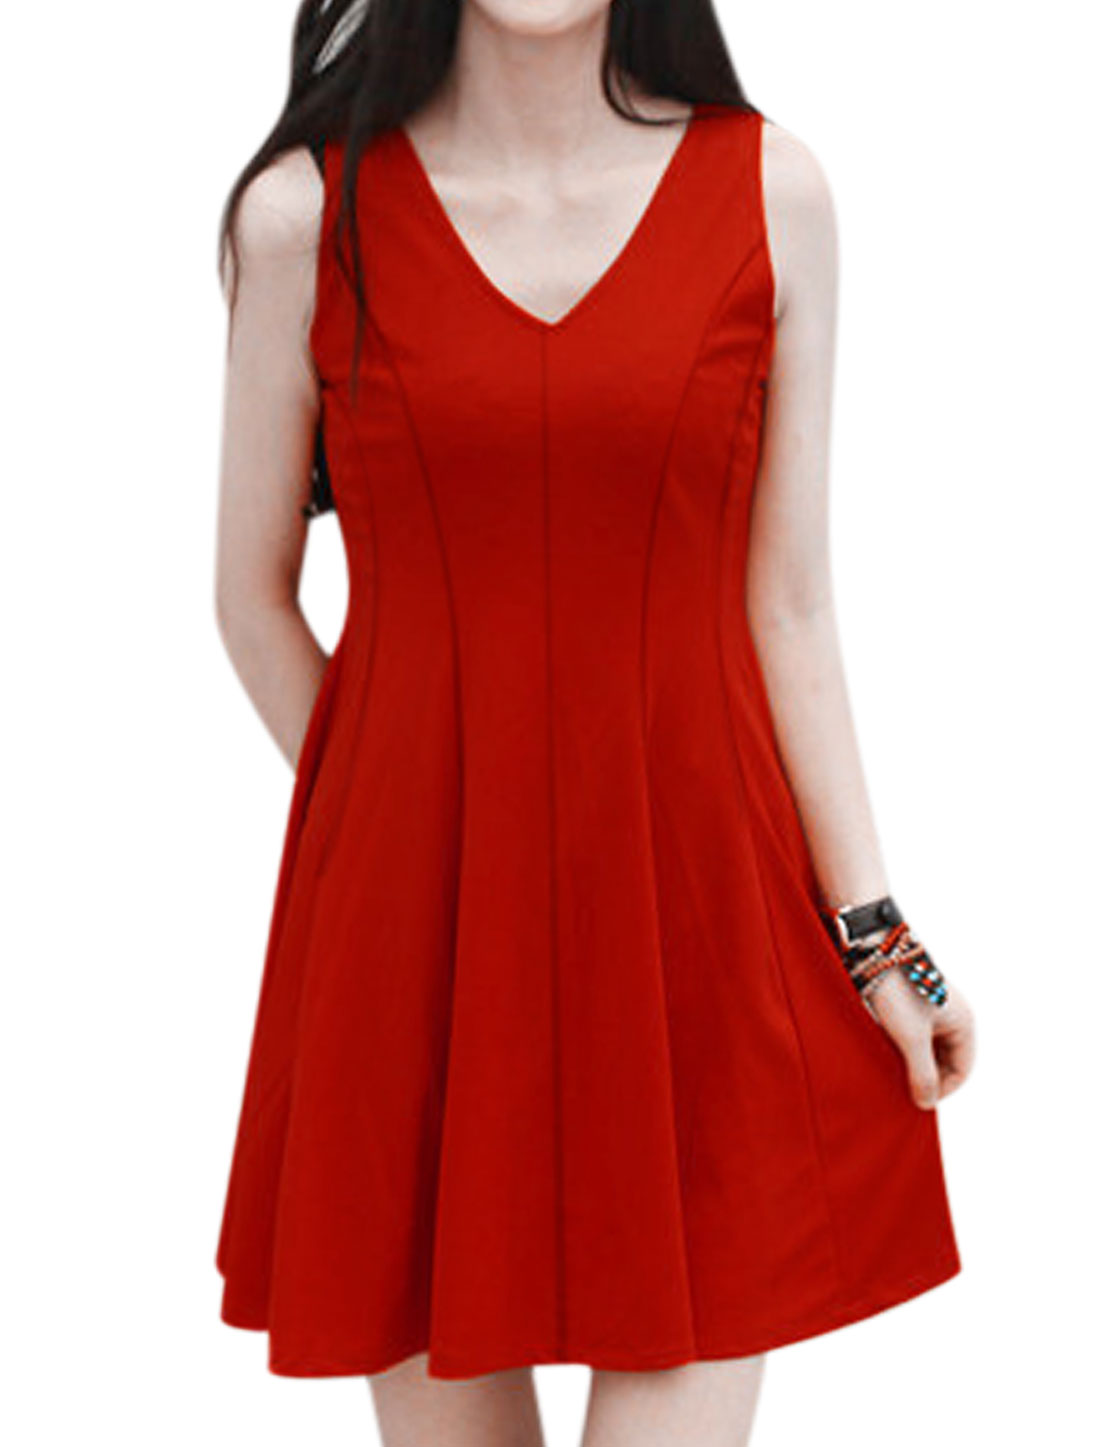 Women Sleeveless Deep V Neck Unlined Casual A Line Dress Red M